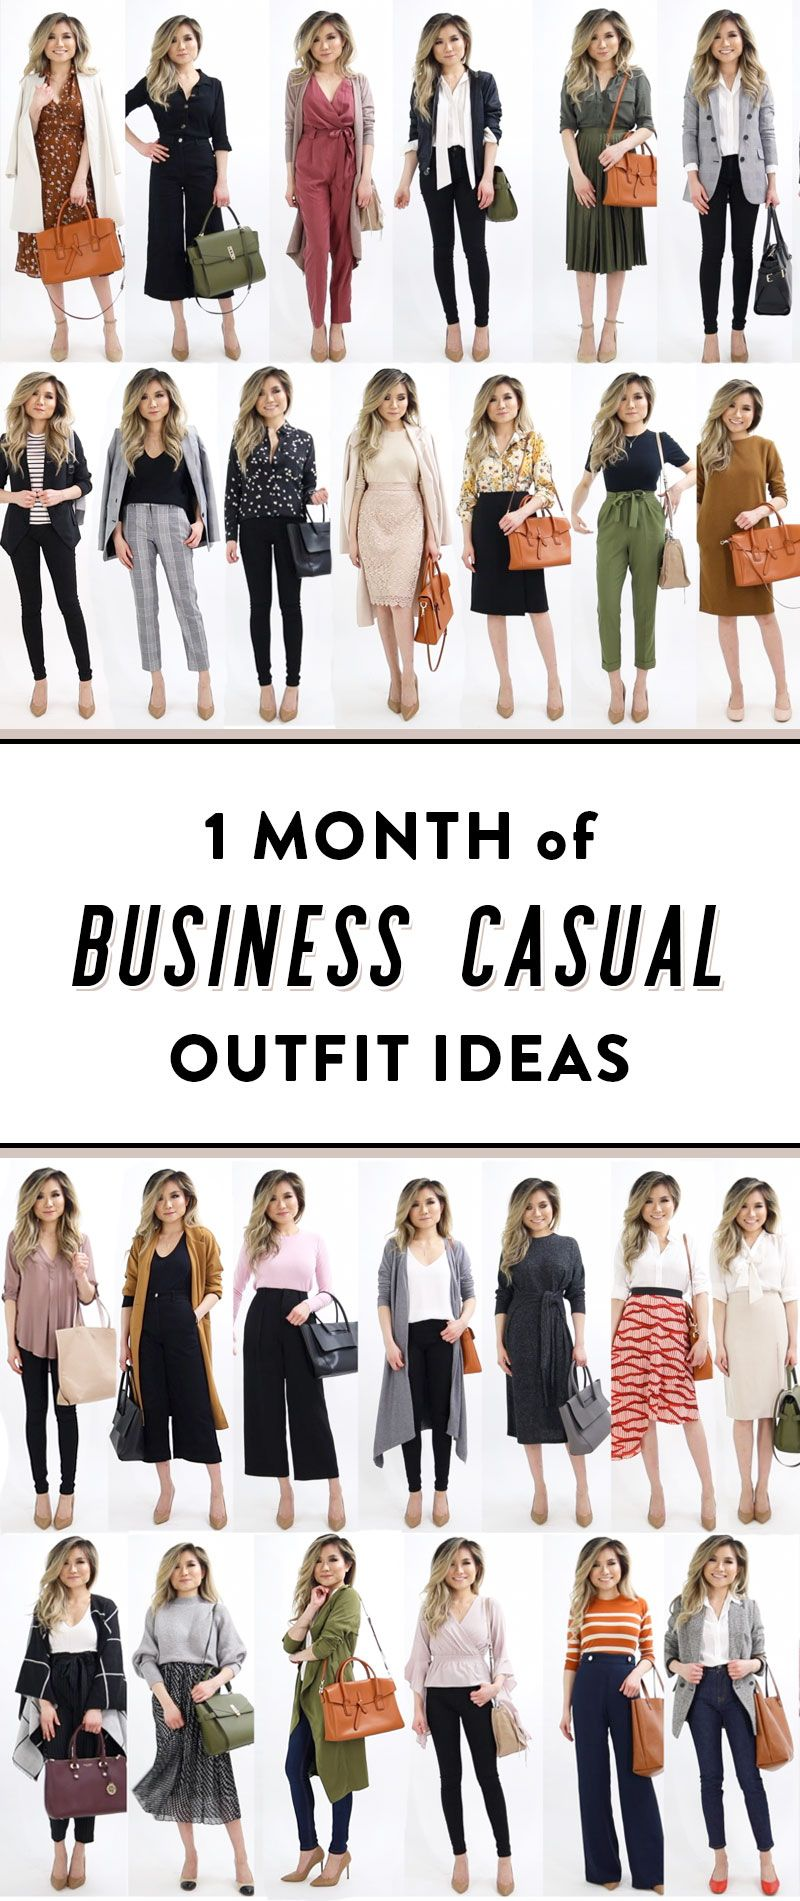 20 MONTH of Business Casual Work Outfit Ideas for Women  Outfit